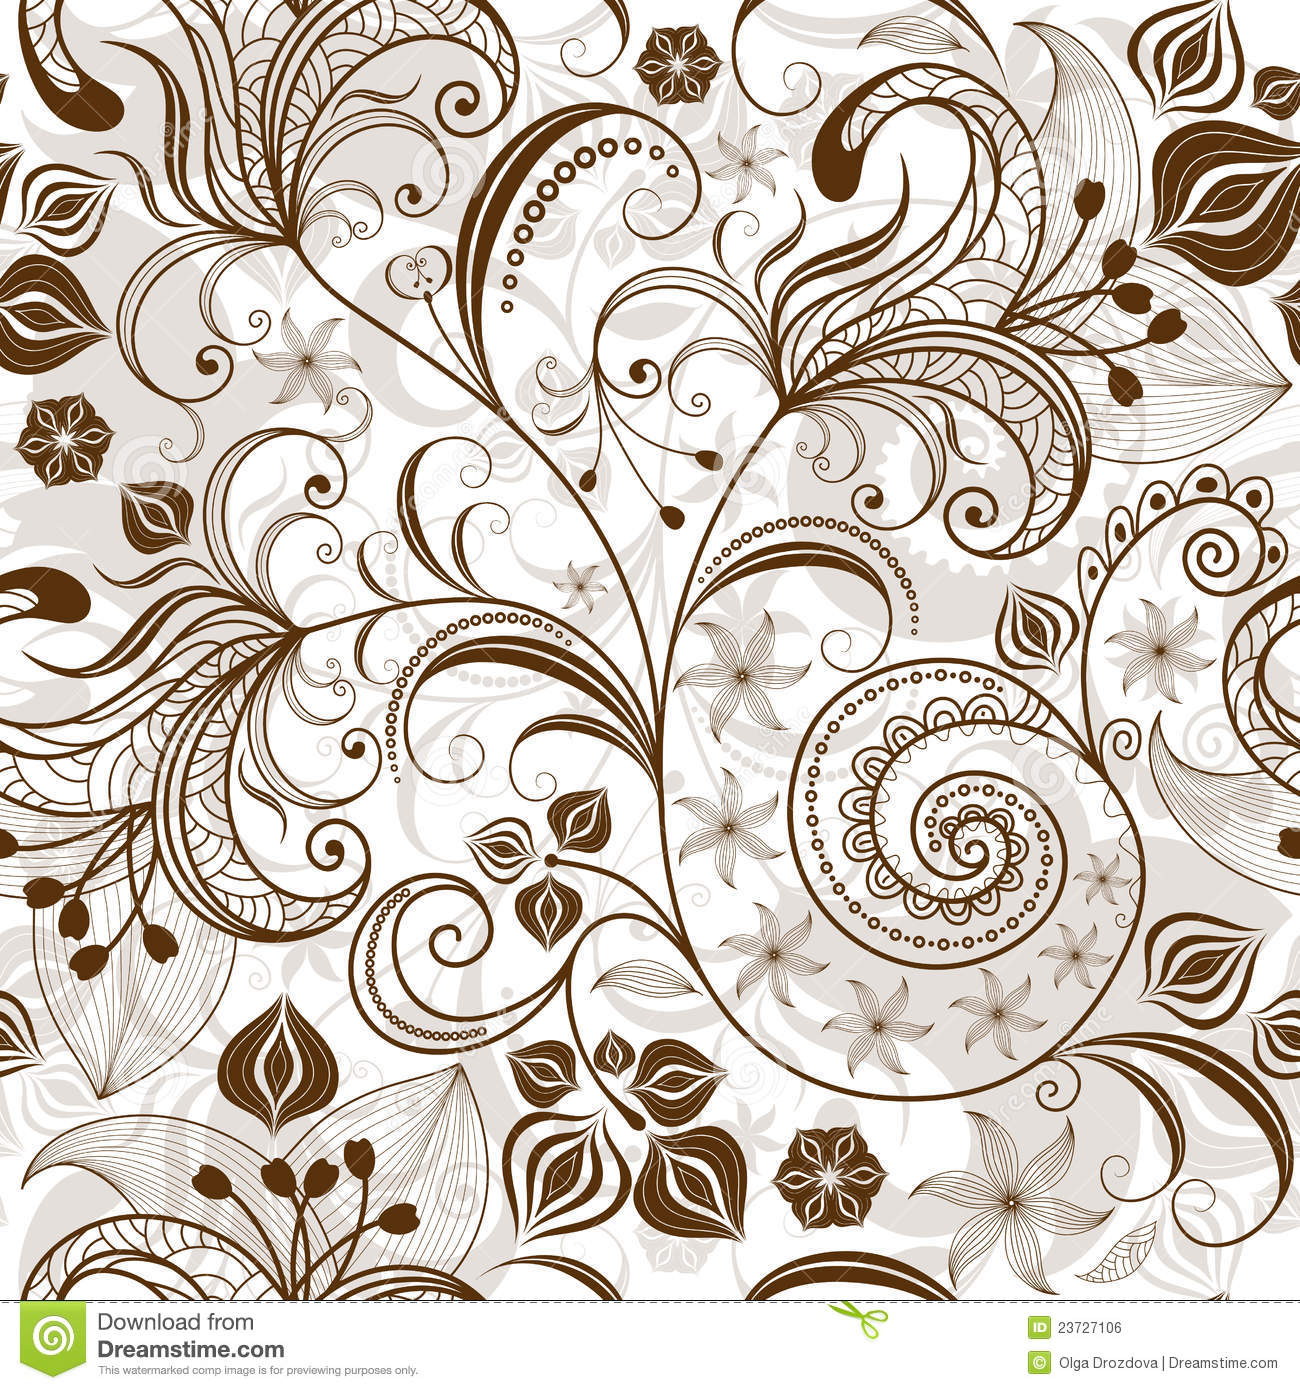 Repeating white brown floral pattern stock vector illustration of repeating white brown floral pattern mightylinksfo